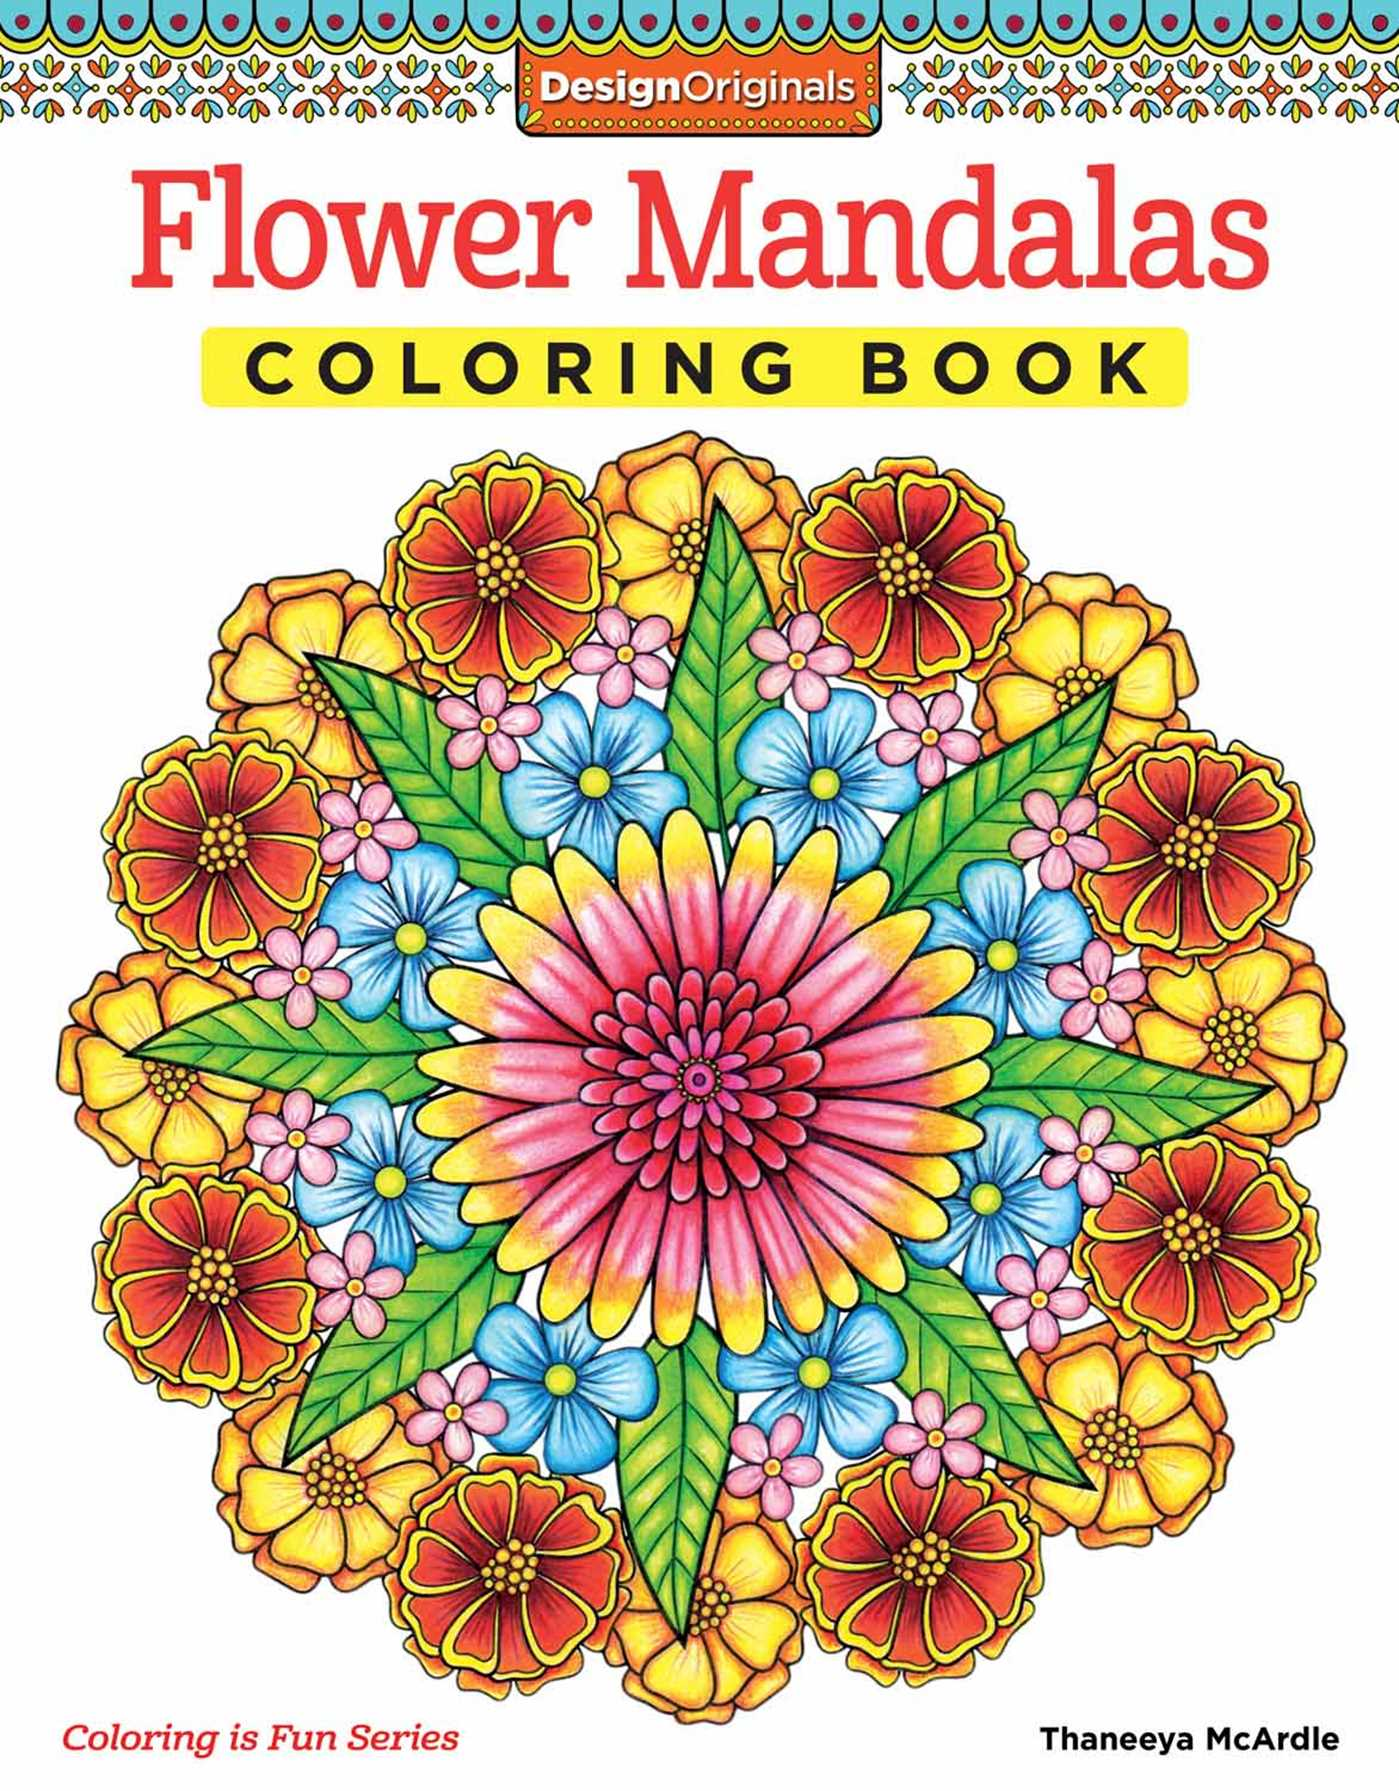 Book Cover Image Jpg Flower Mandalas Coloring